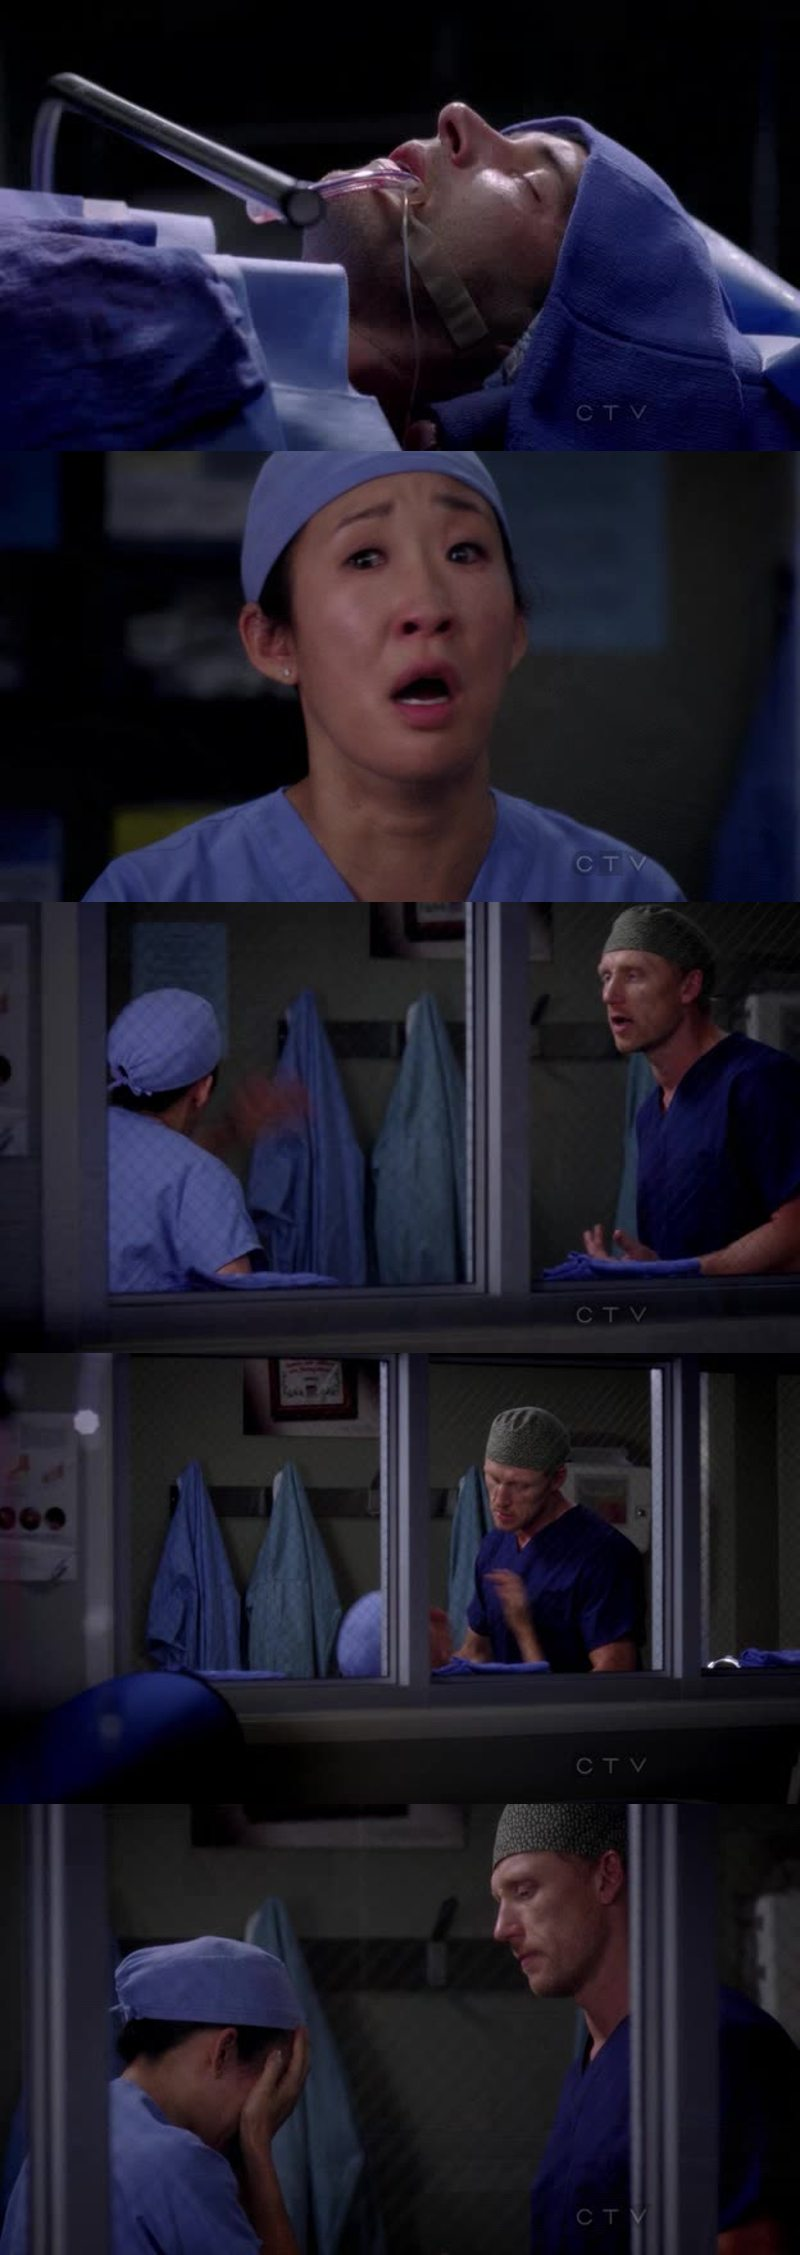 I can't believe that Henry has died, he was such a sweet man. I think that the producers created the same story as Dan's one because everybody loved him.  Cristina's reaction was totally heartbreaking, I was crying all my tears during this scene.